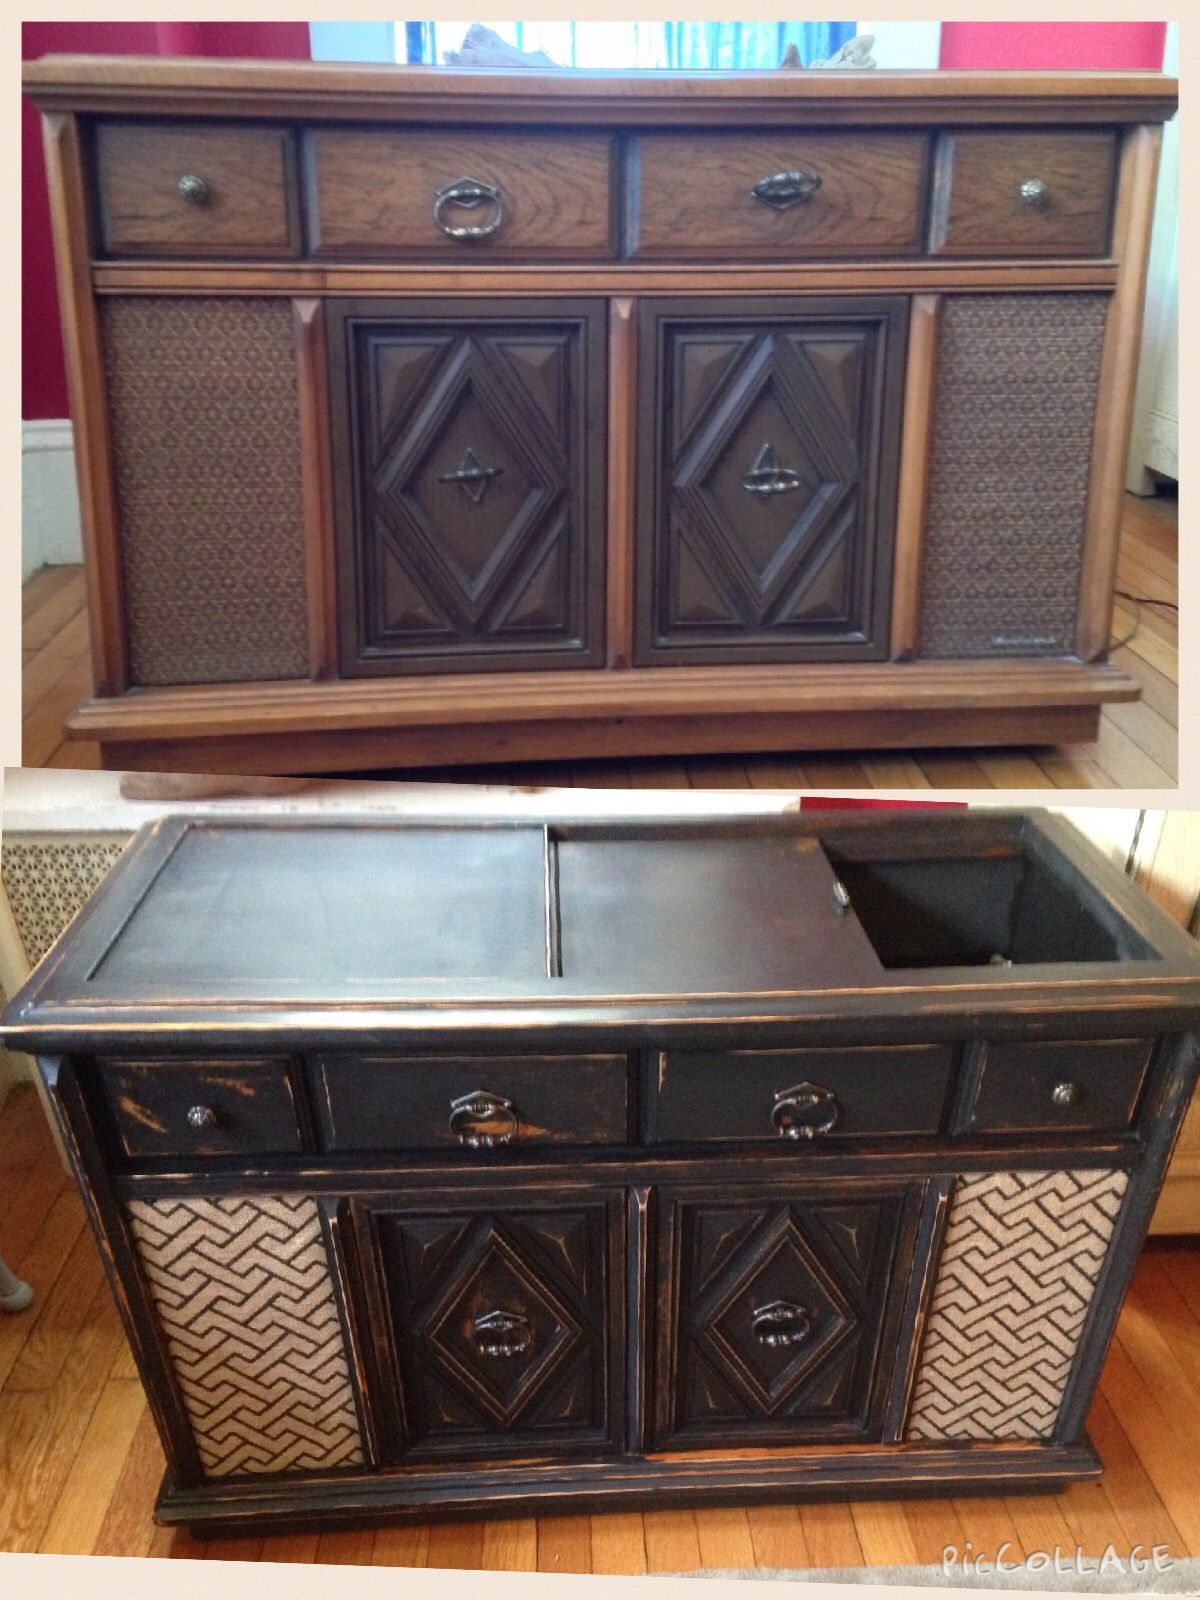 1970 S Stereo Cabinet Repurposed Into 2015 Bar Cart Sold